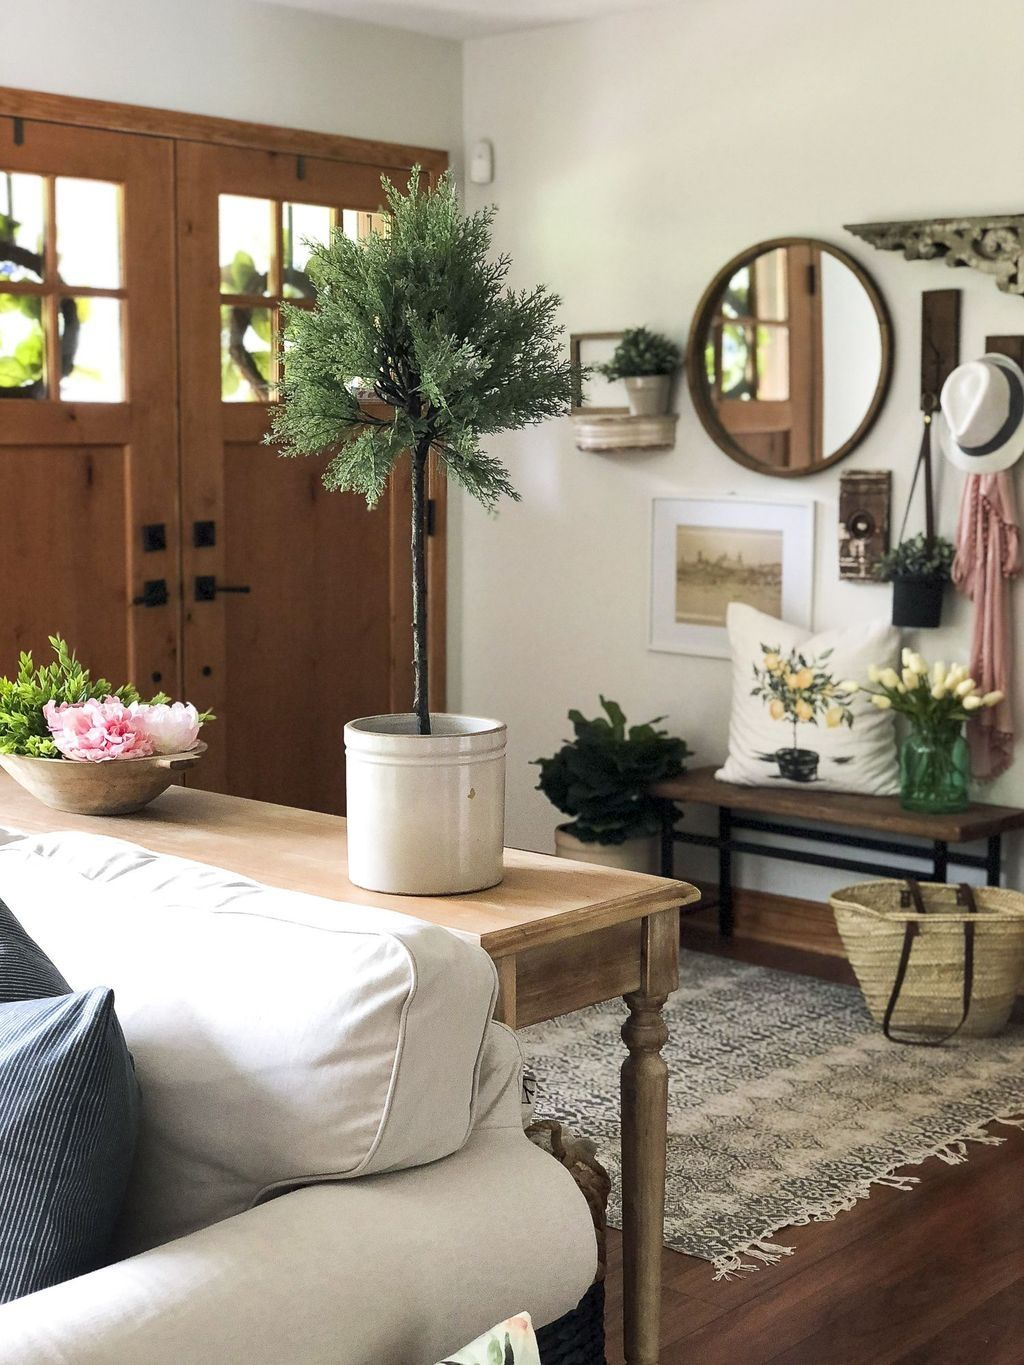 30+ Perfect Home Decoration Ideas For Summer in 2020 | Easy home decor,  Summer living room decor, Summer home decor